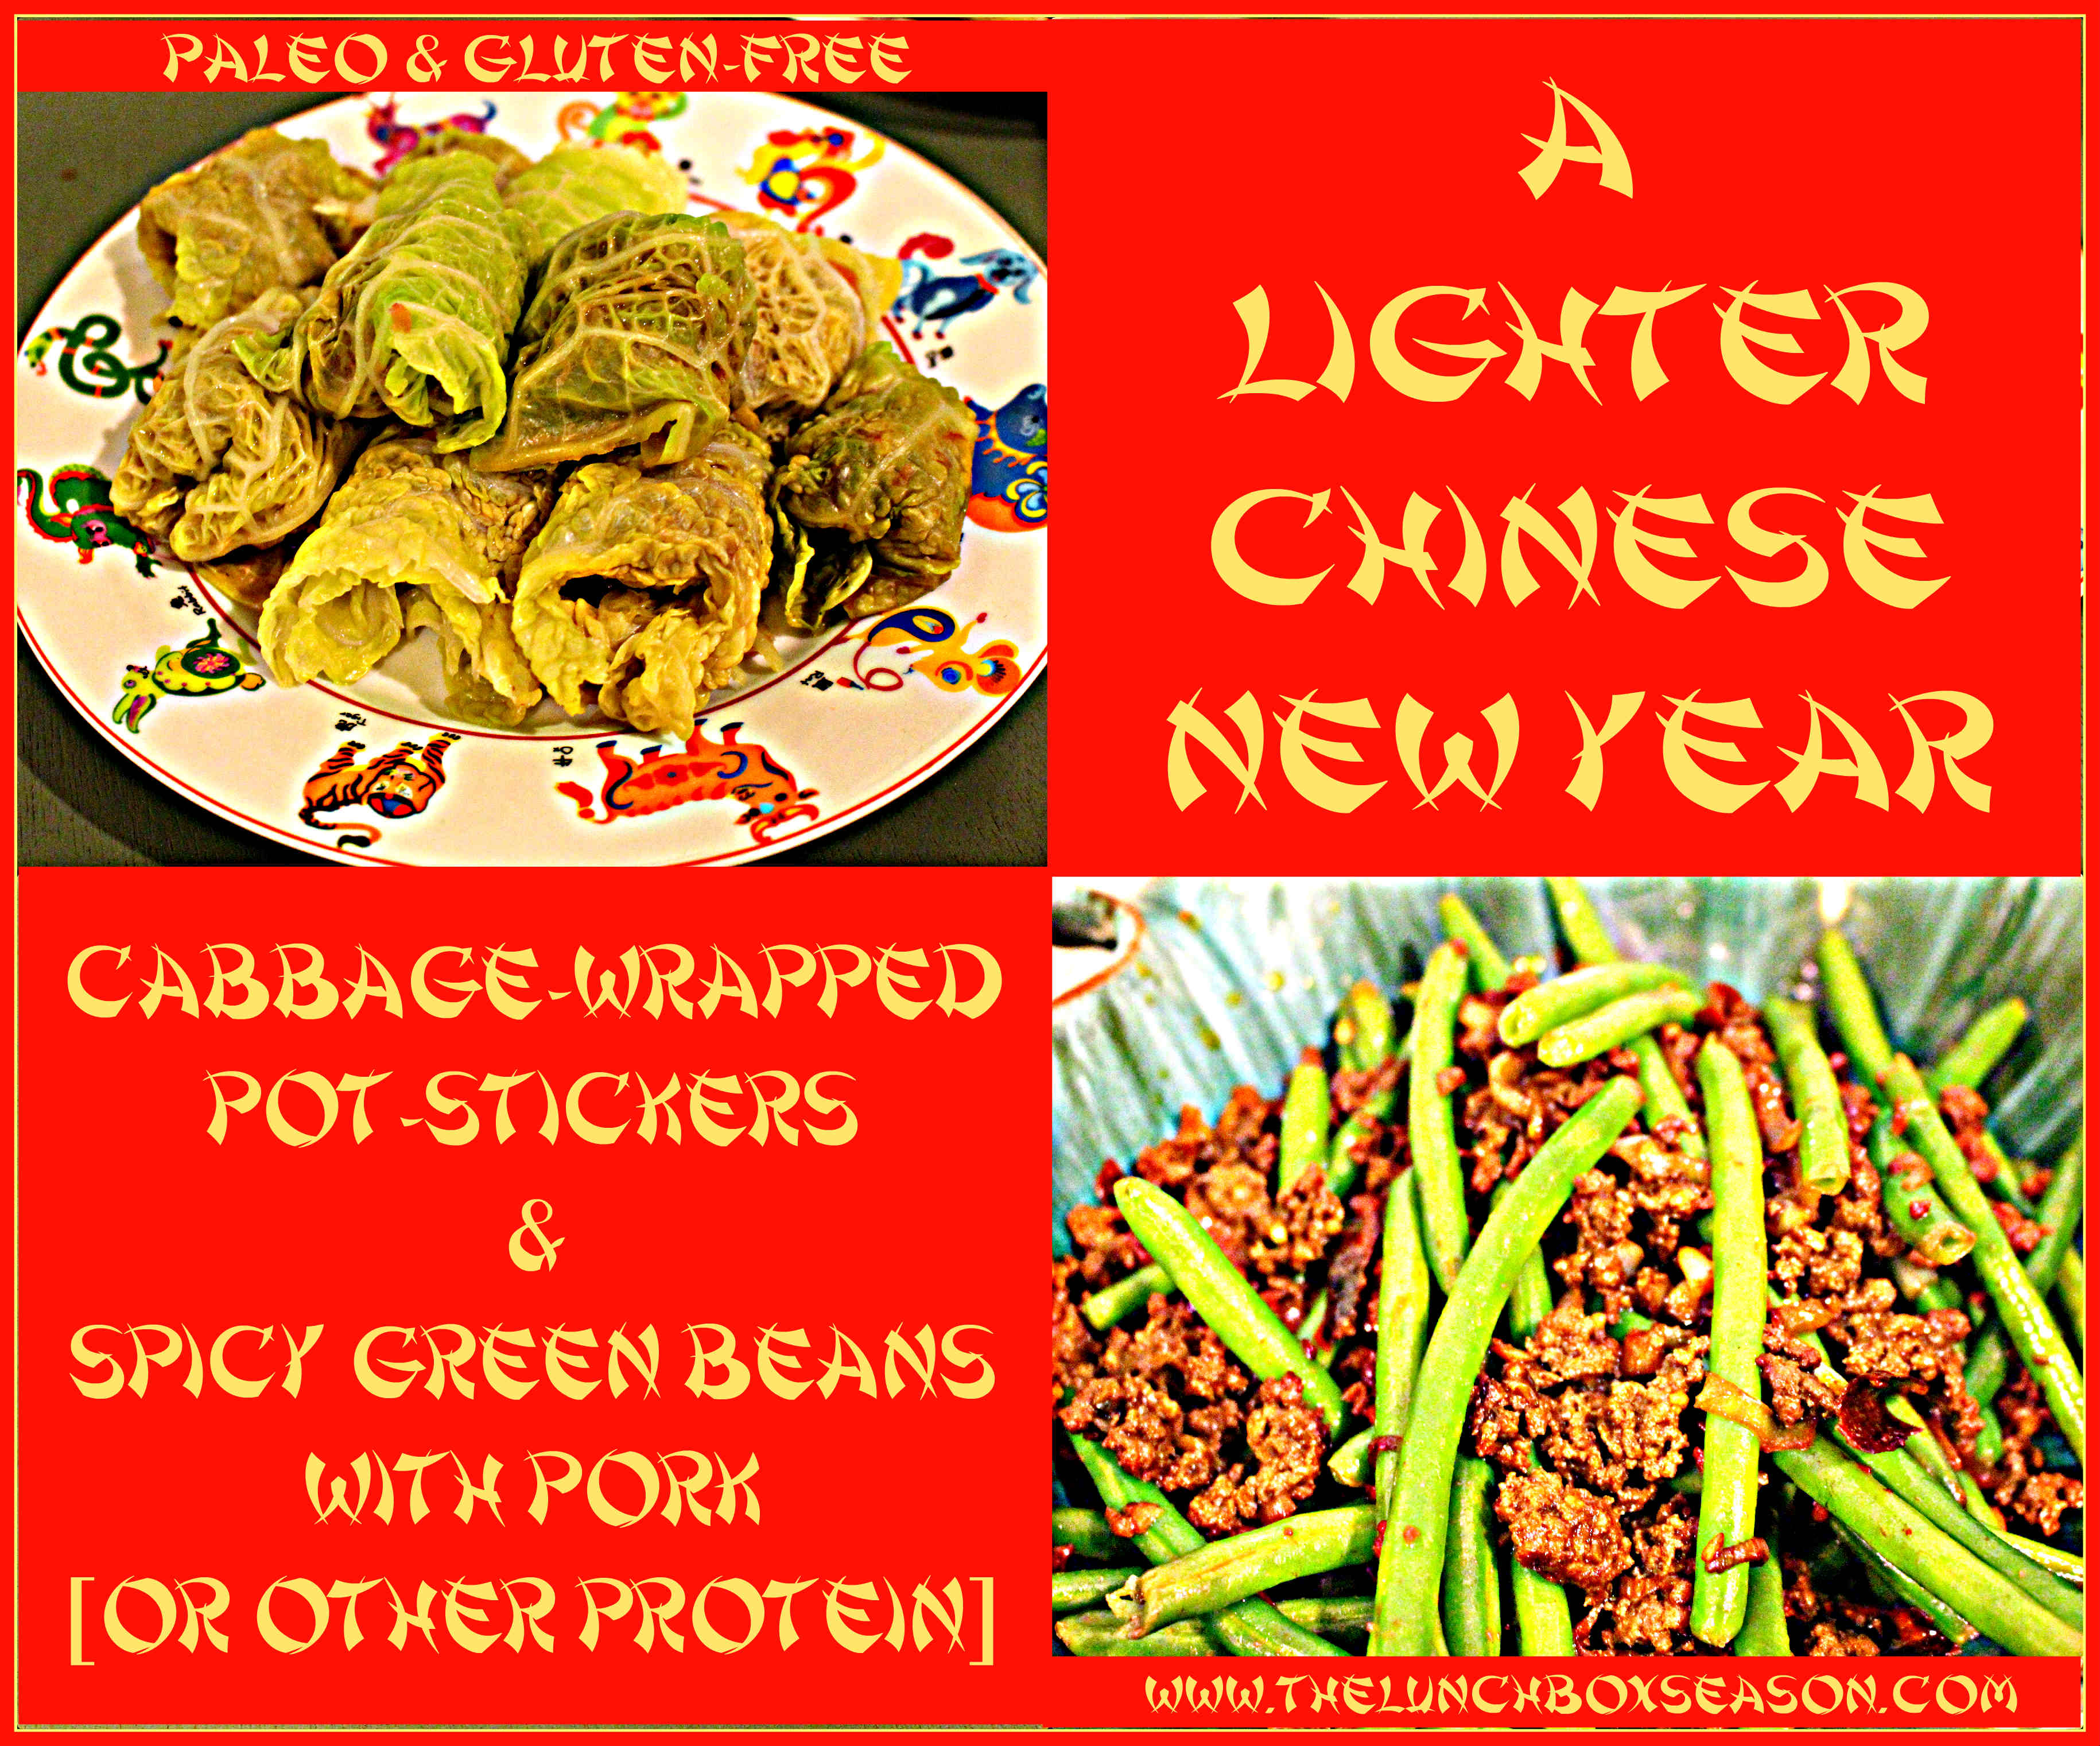 A Lighter Chinese New Year